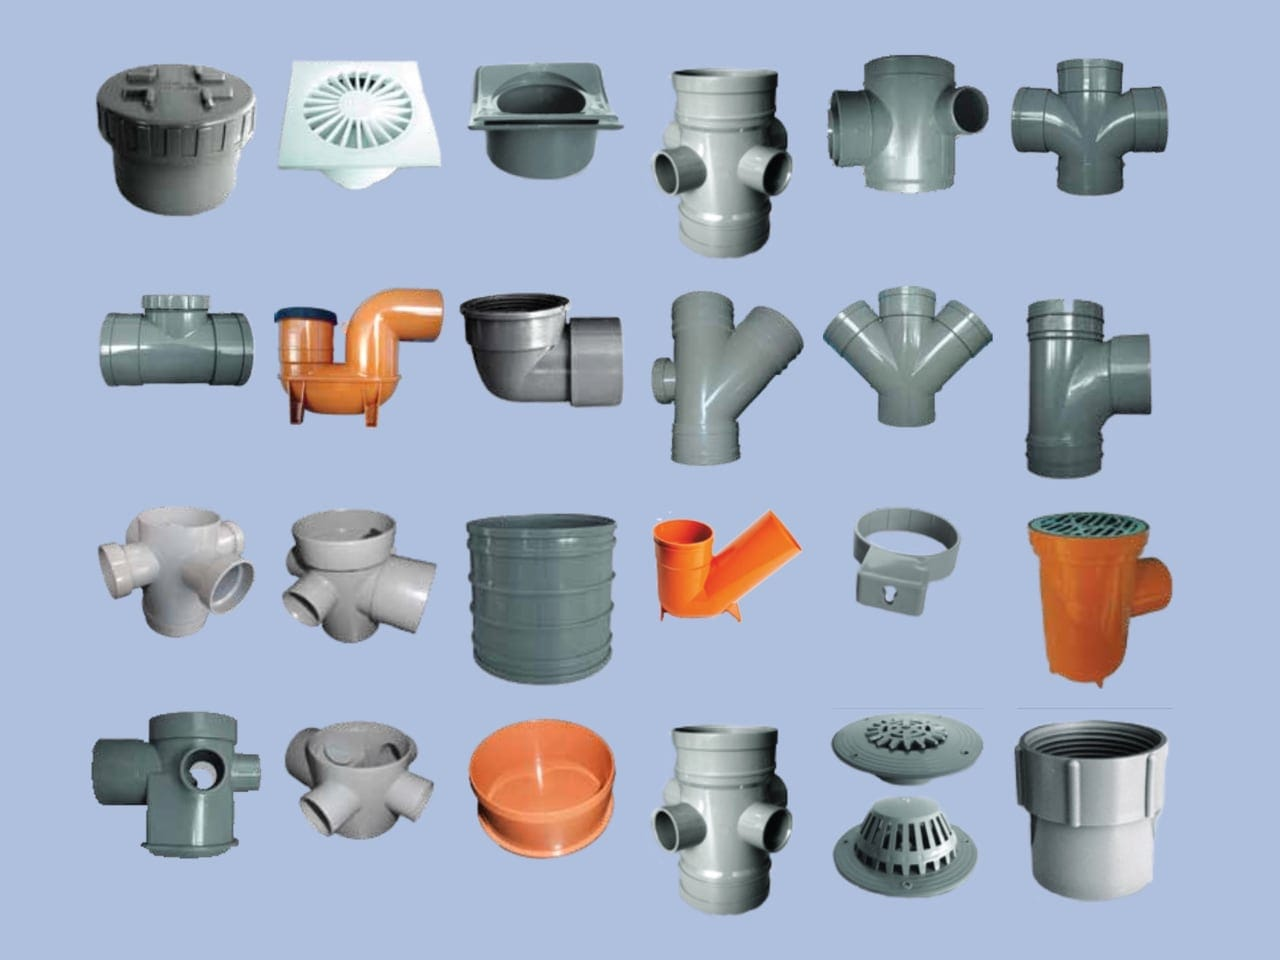 Group of uPVC Solvent Fittings by Juma Plastic, Dubai UAE.